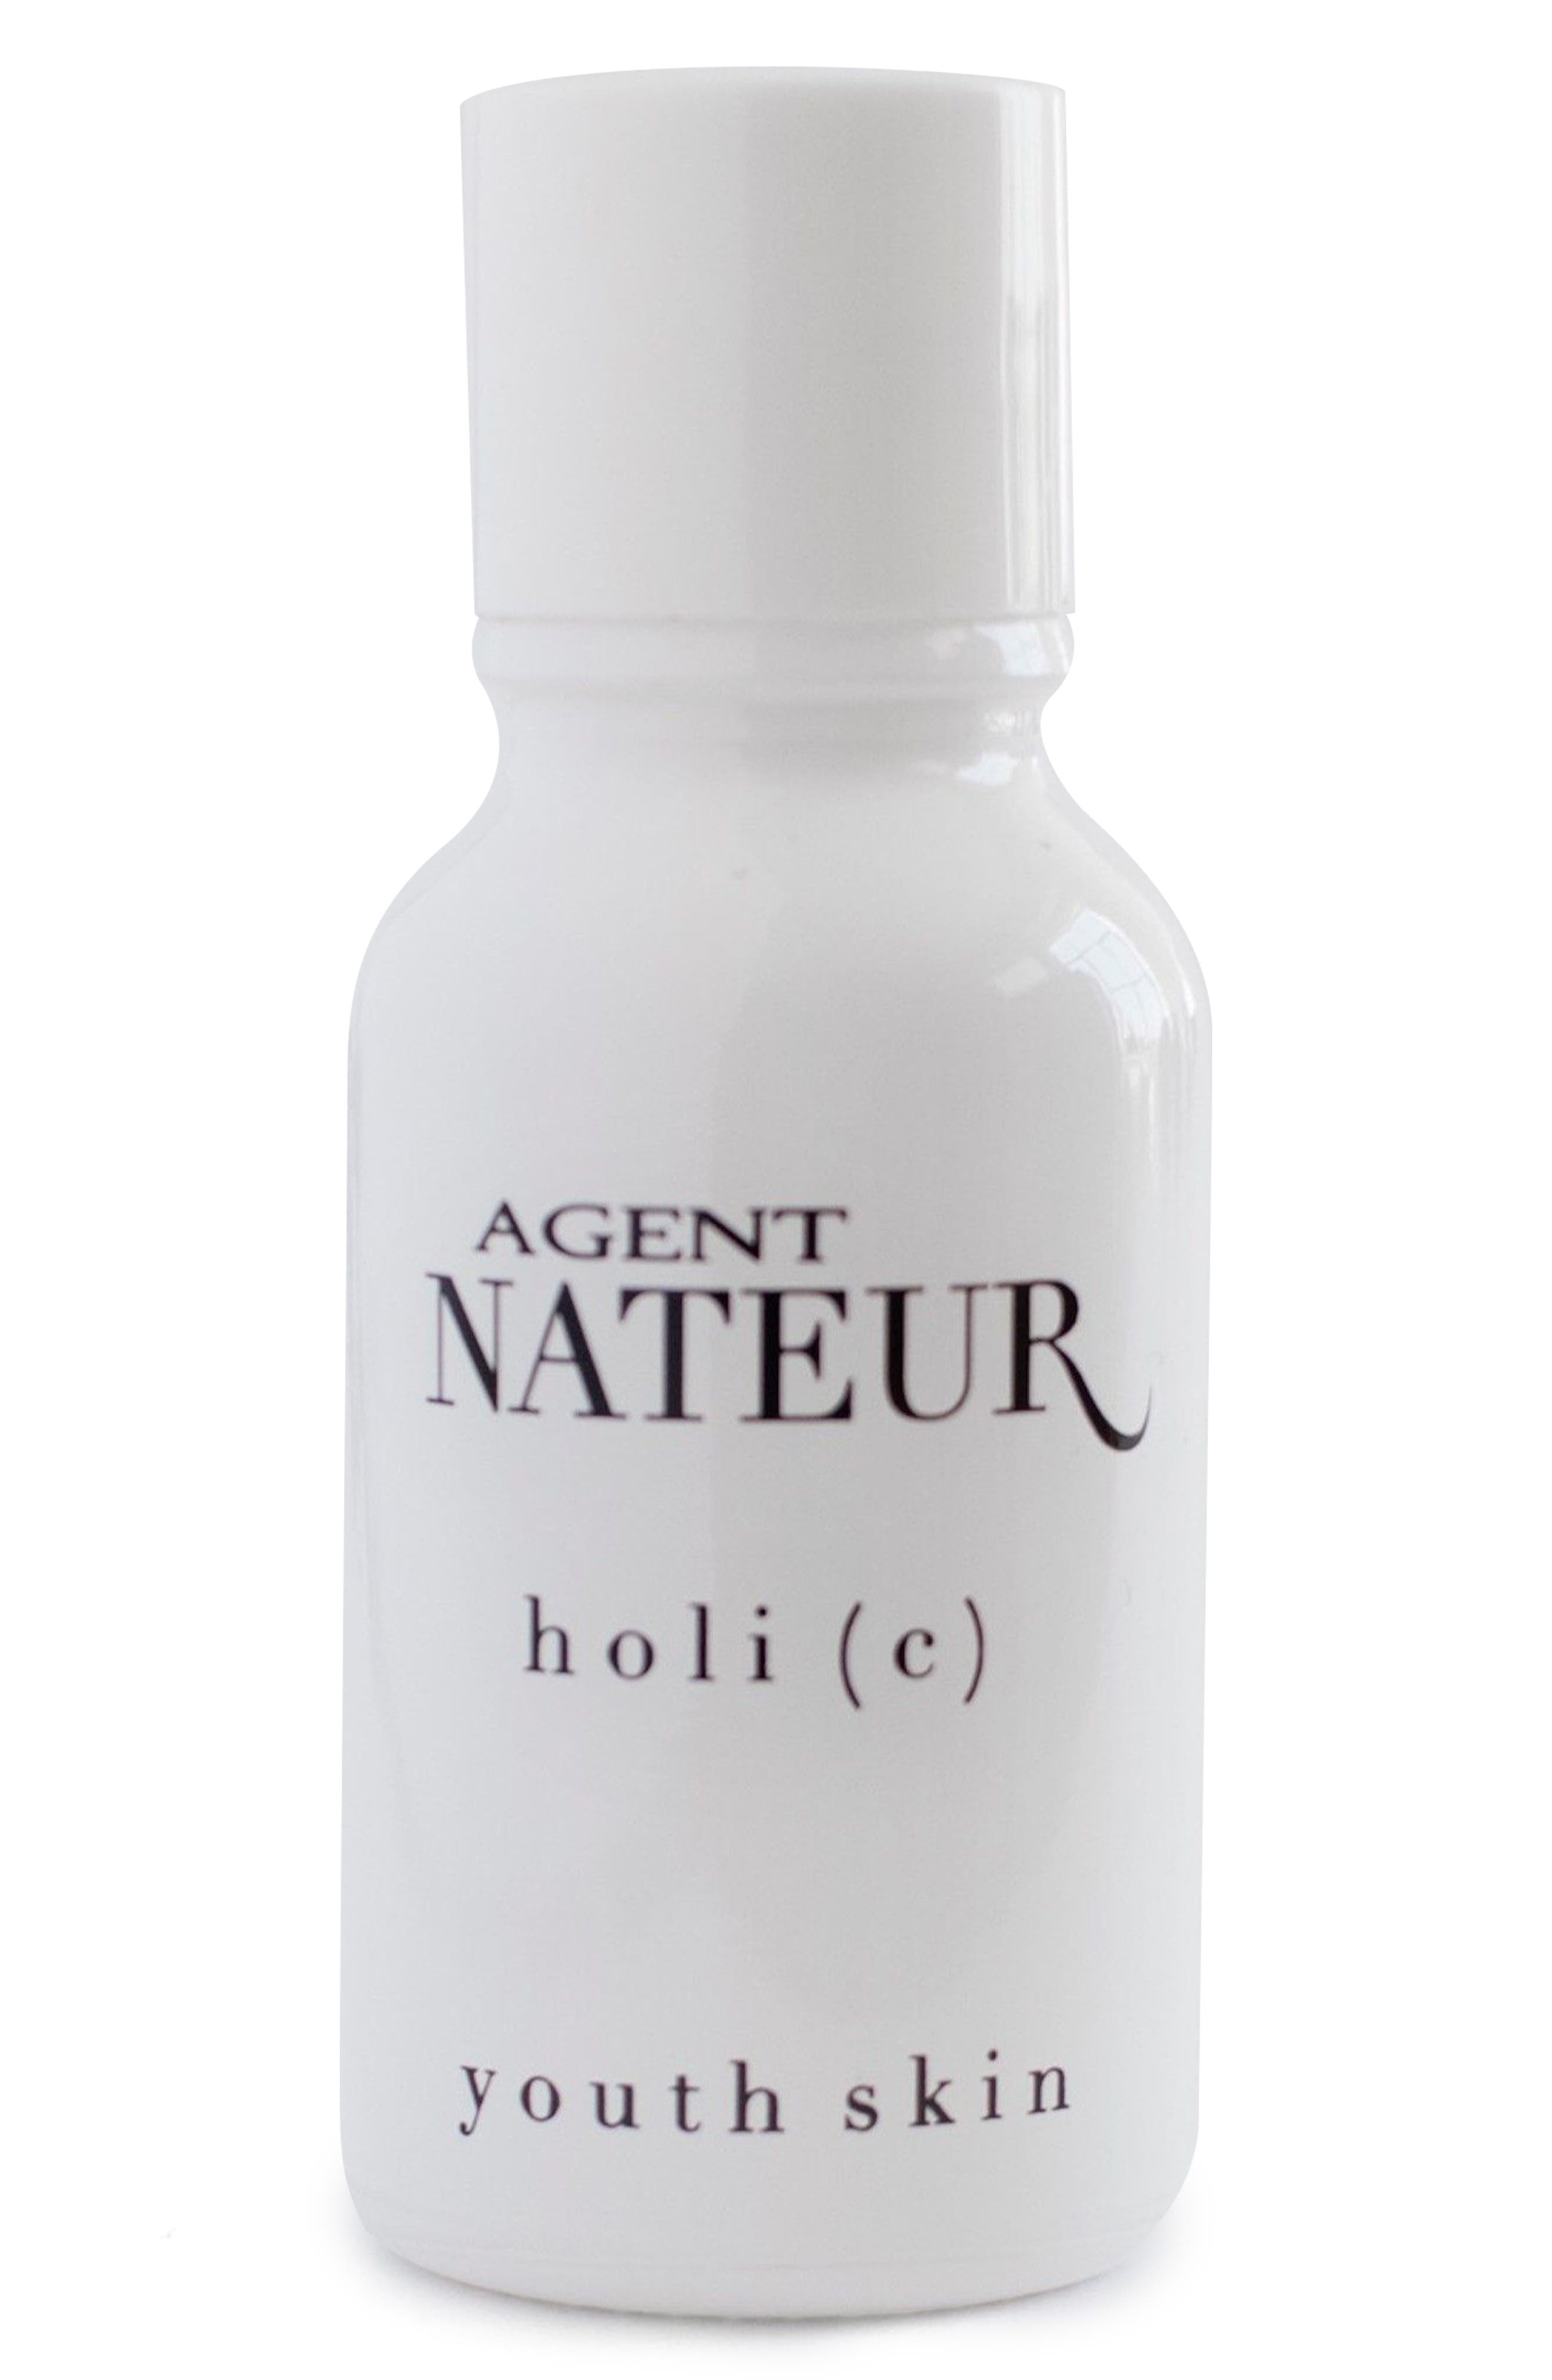 Agent Nateur holi(c) Youth Skin